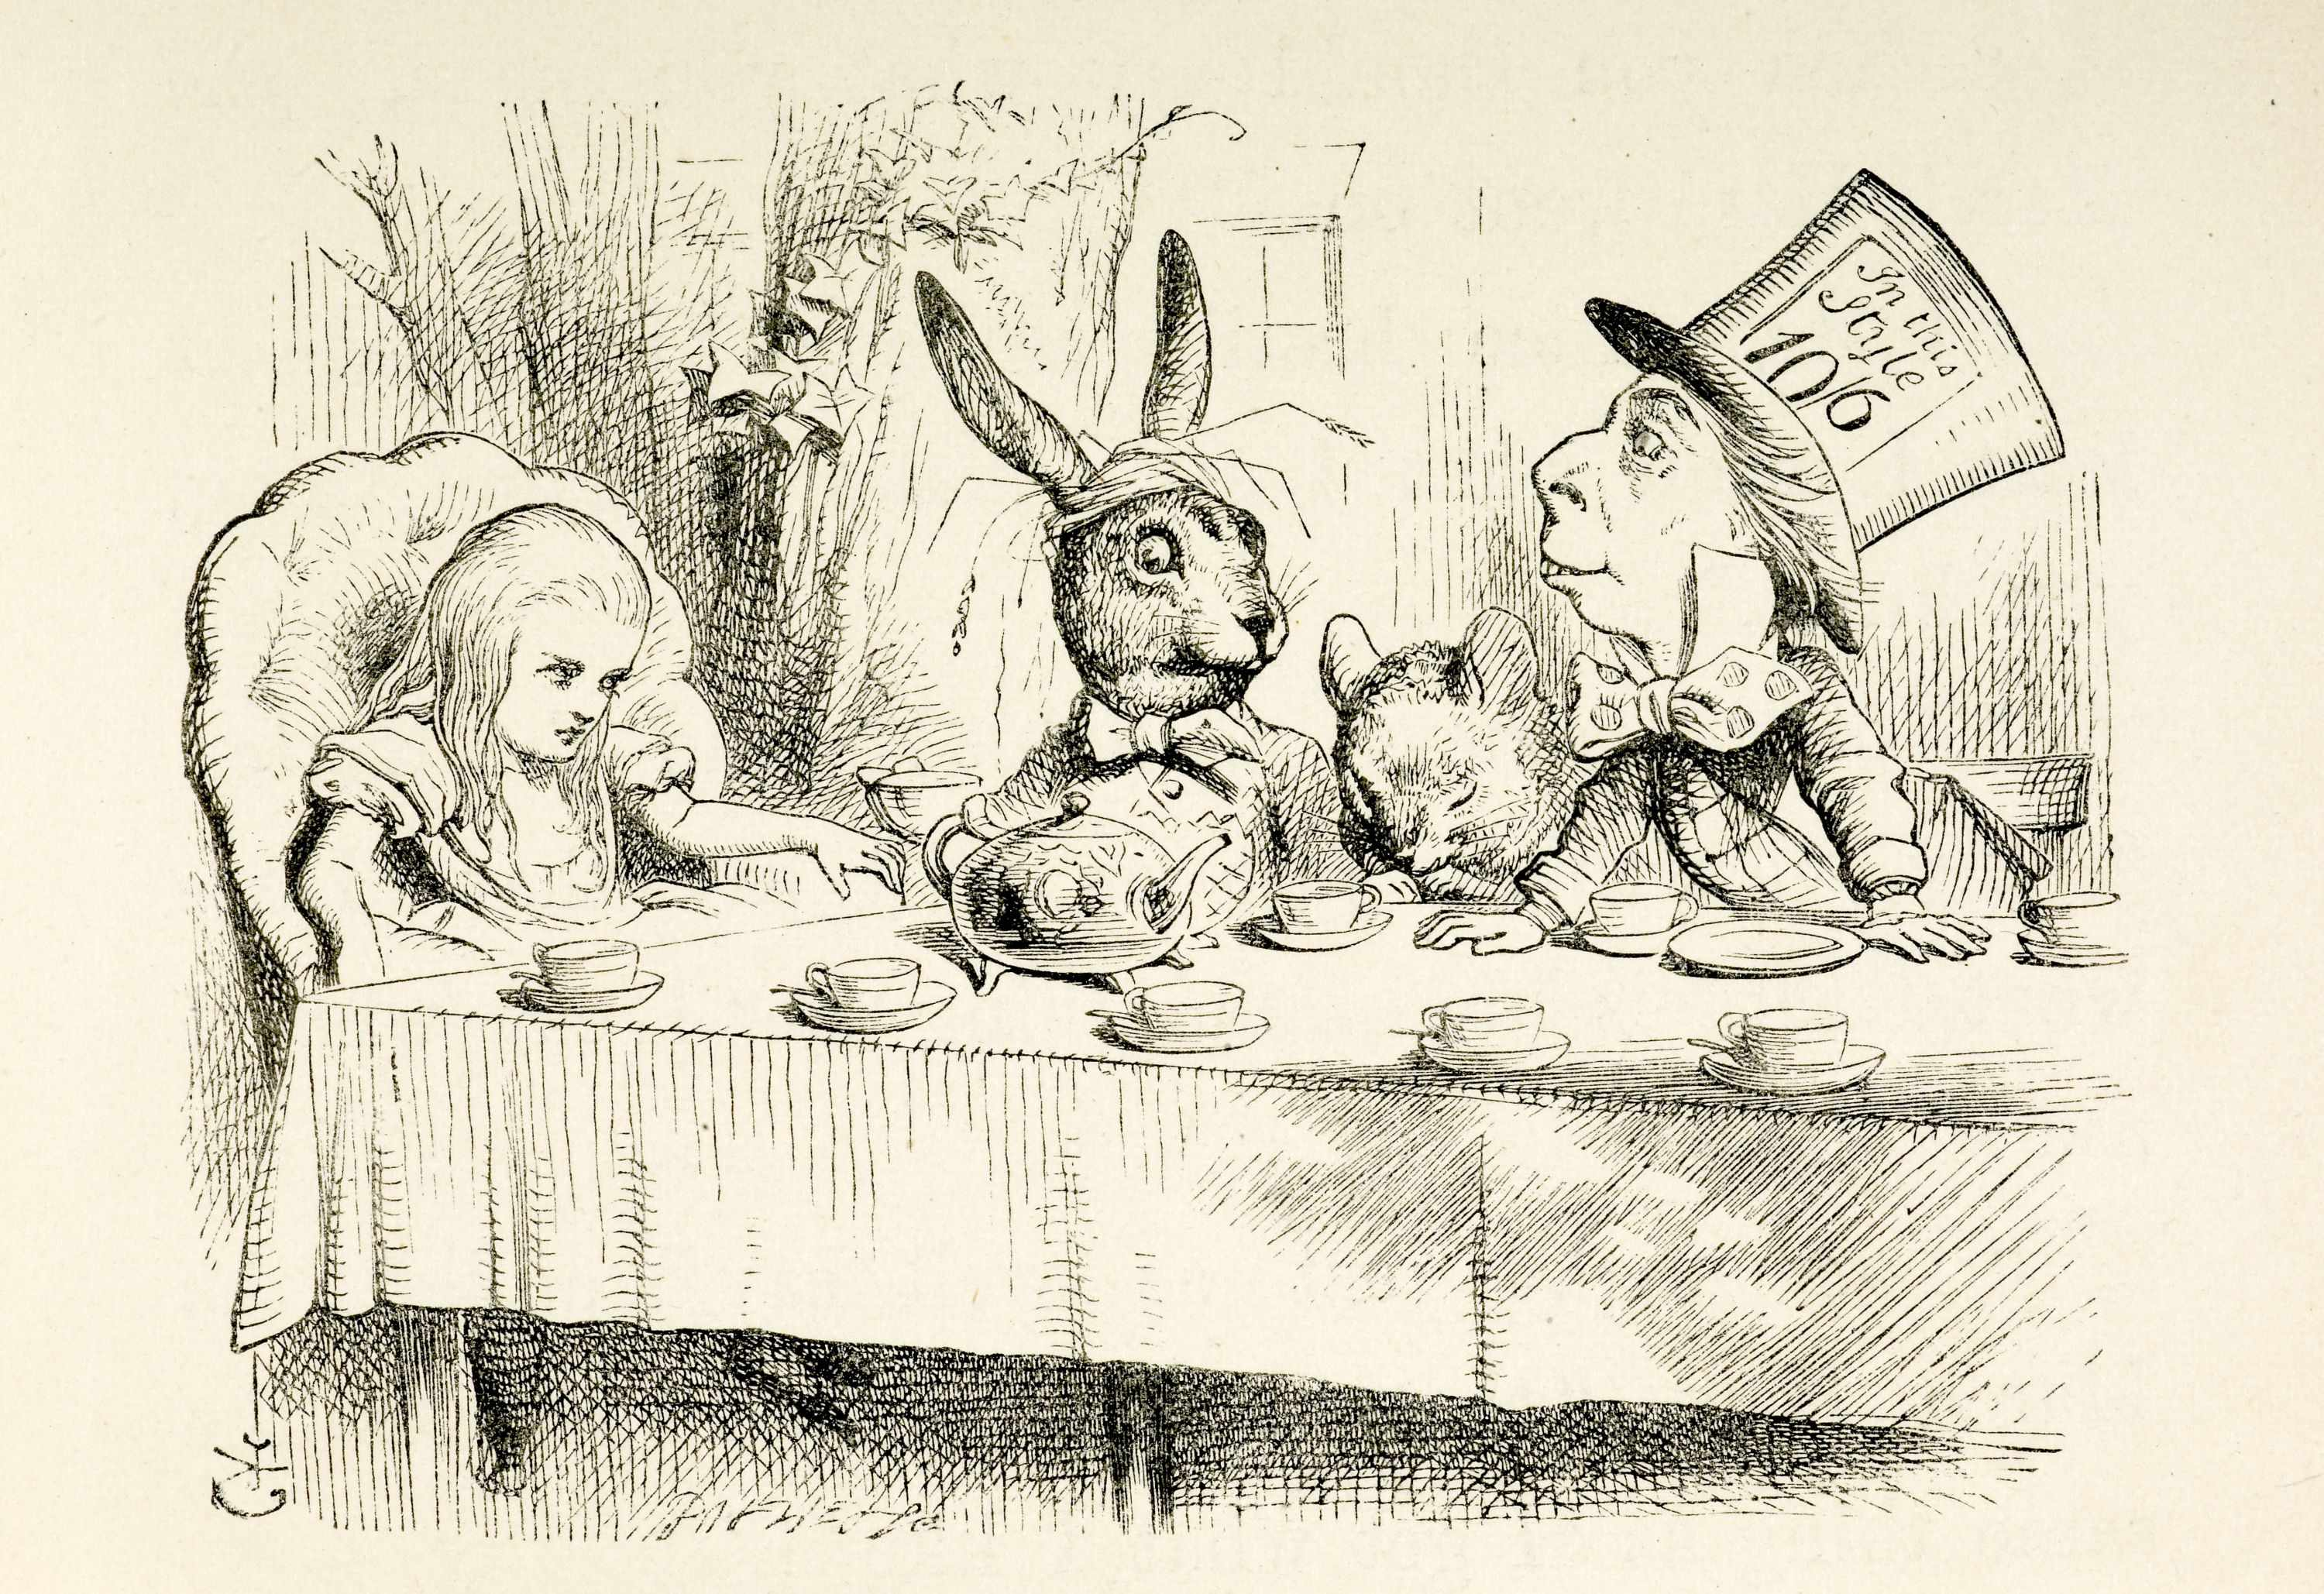 Alice at the Mad Hatter's tea party.